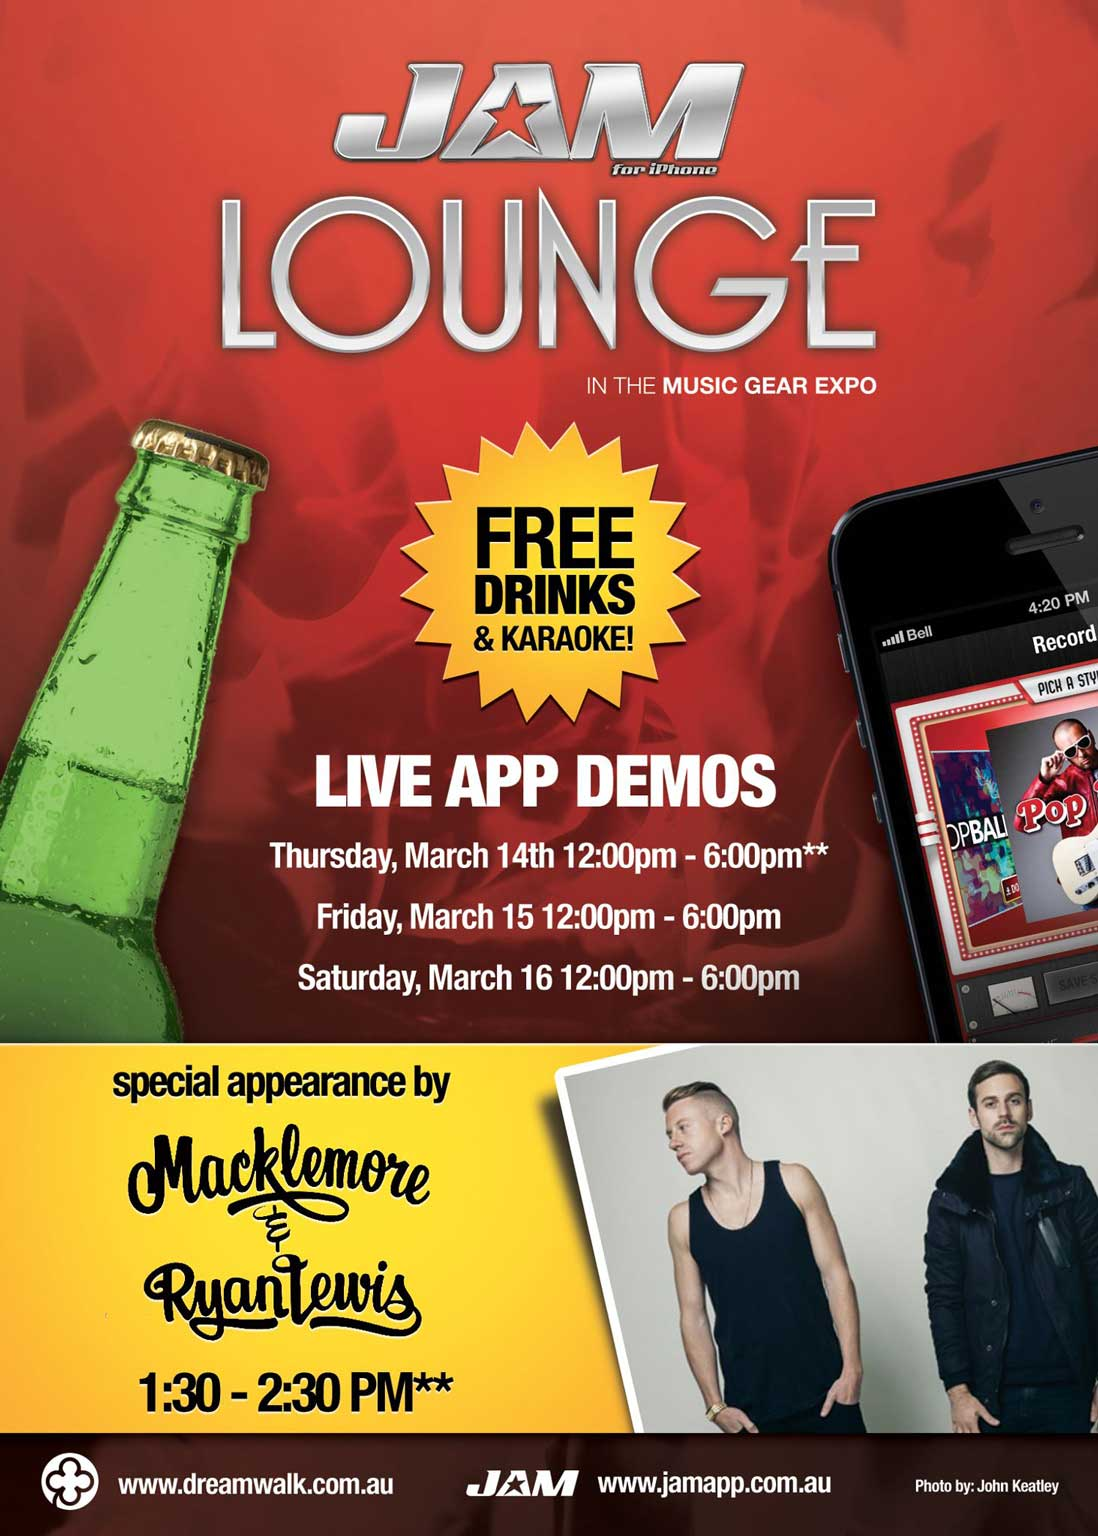 Jam iphone app promotion Macklemore sxsw Flyer